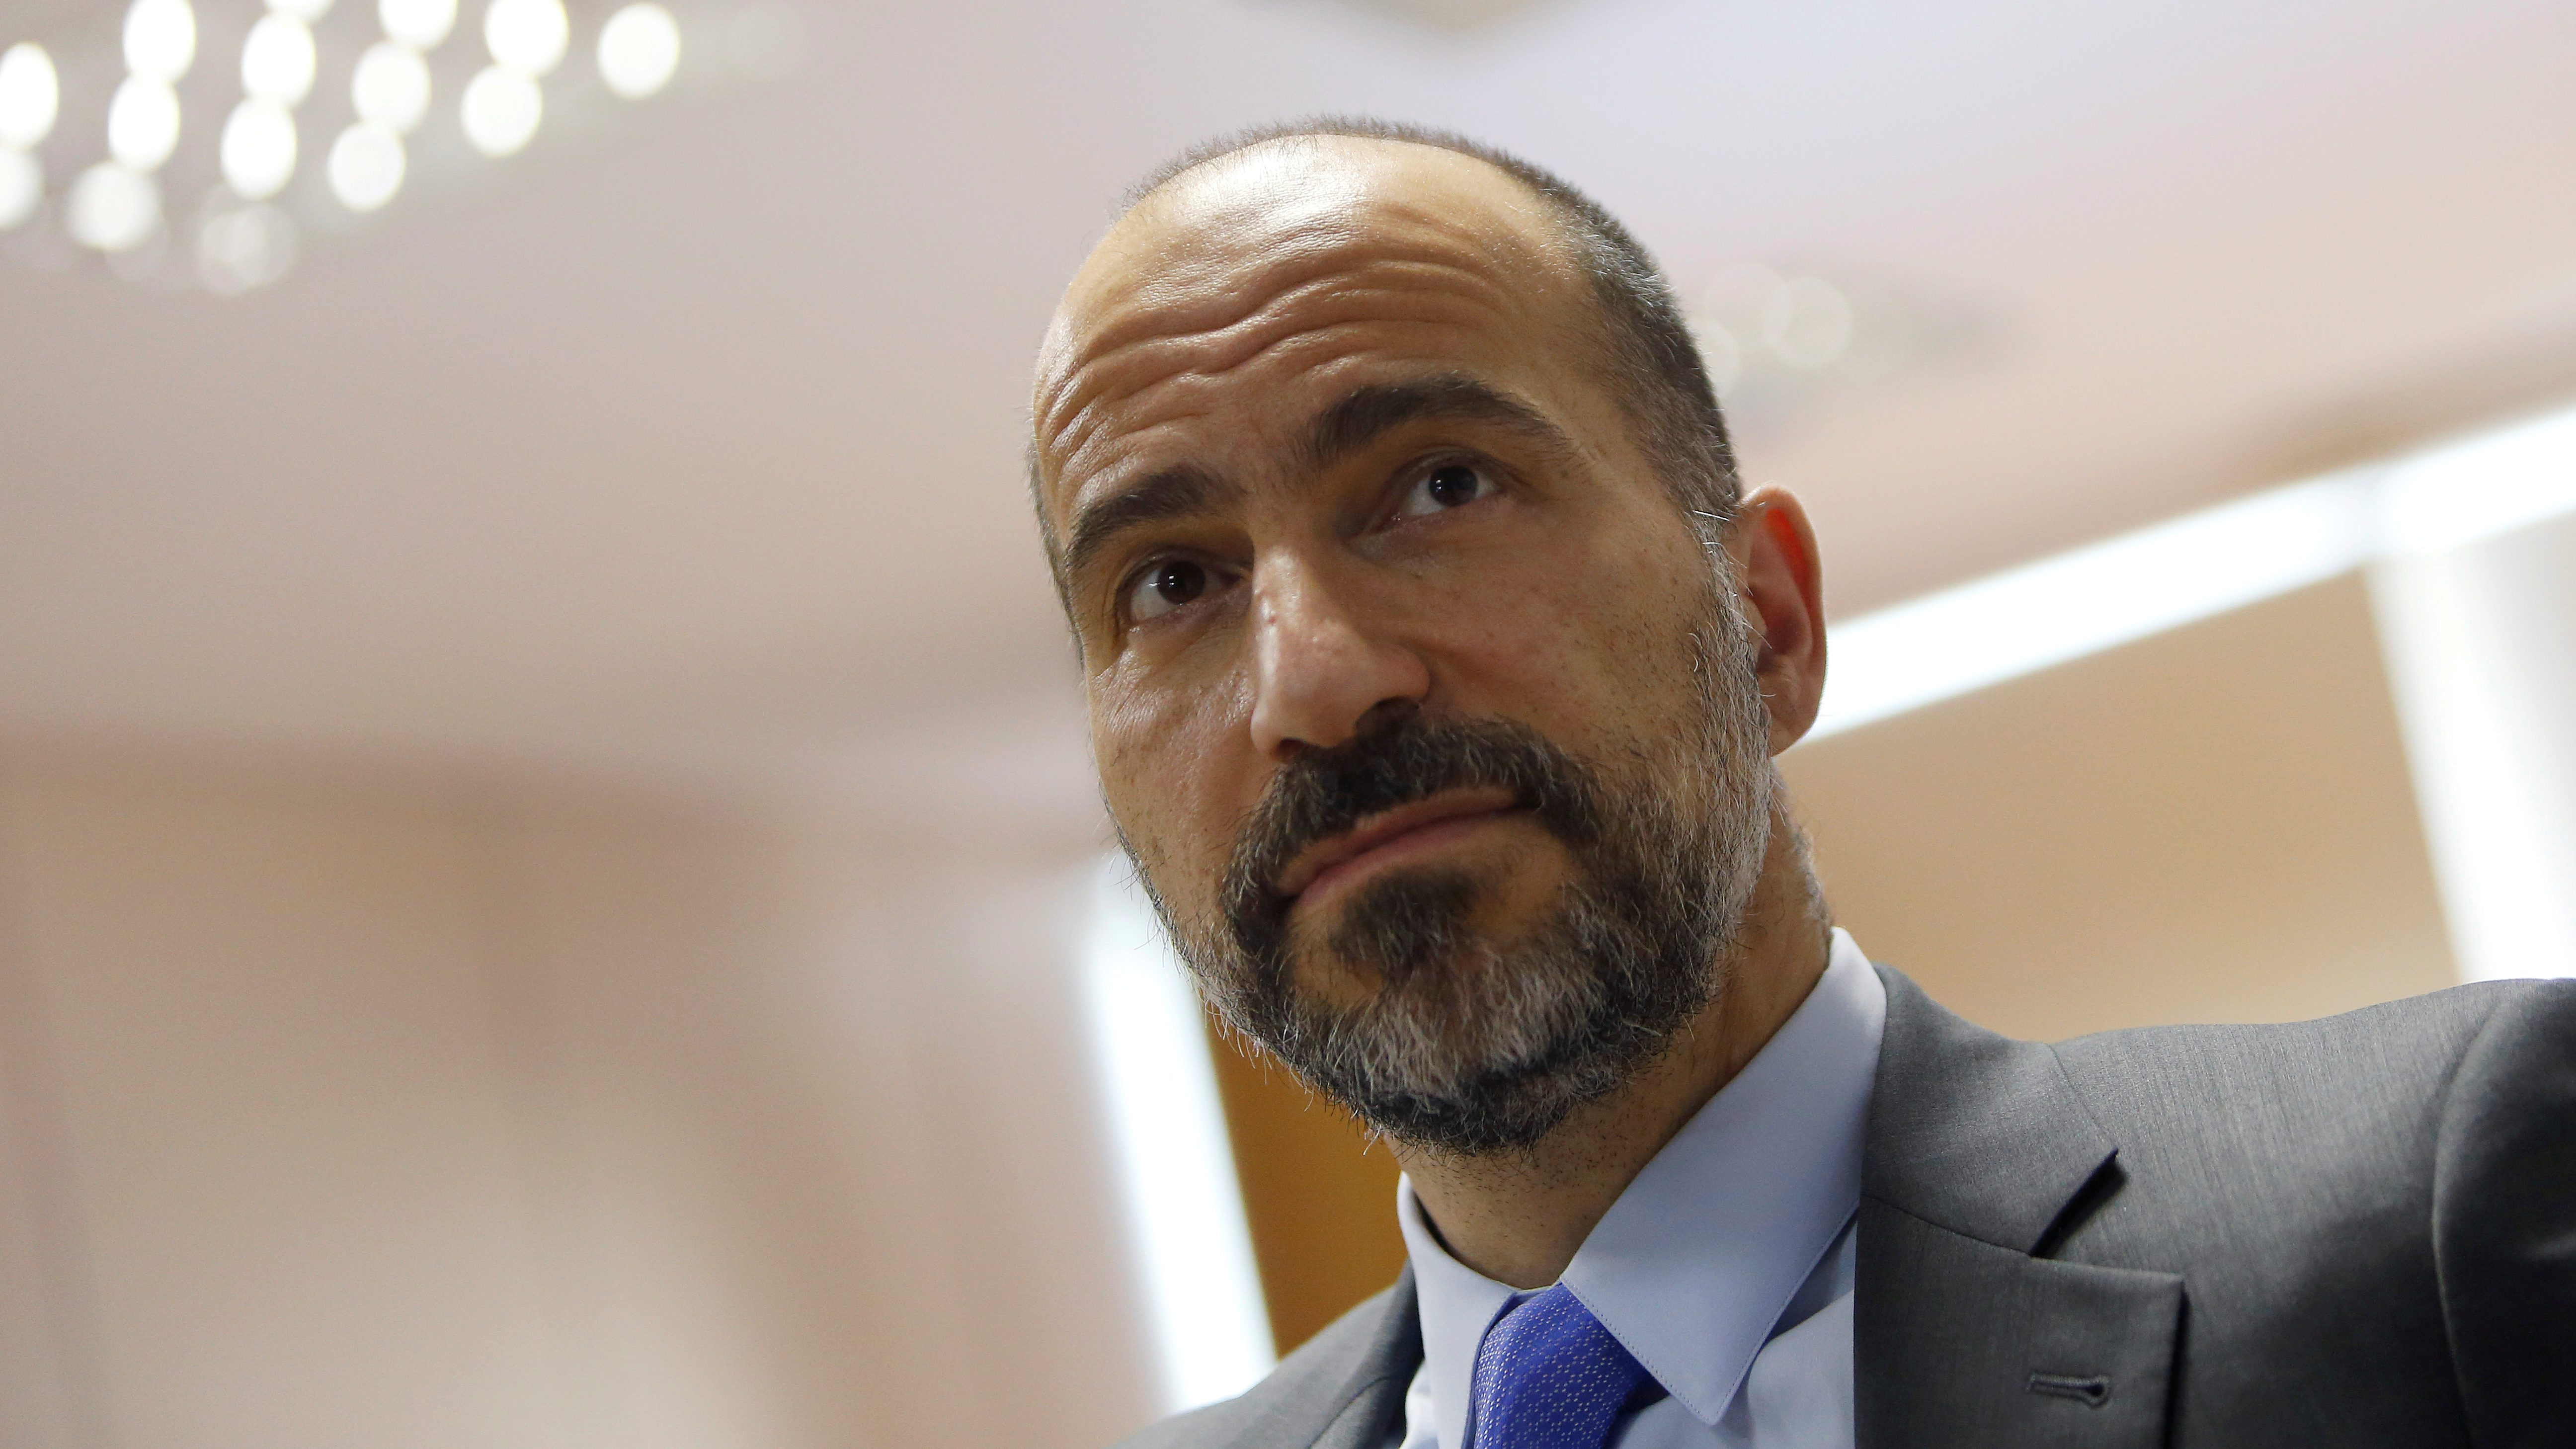 FILE PHOTO:    The chief executive of Uber Technologies Inc, Dara Khosrowshahi attends a meeting with Brazilian Finance Minister Henrique Meirelles (not pictured) in Brasilia, Brazil October 31, 2017. REUTERS/Adriano Machado/File Photo - RC136F0B6110